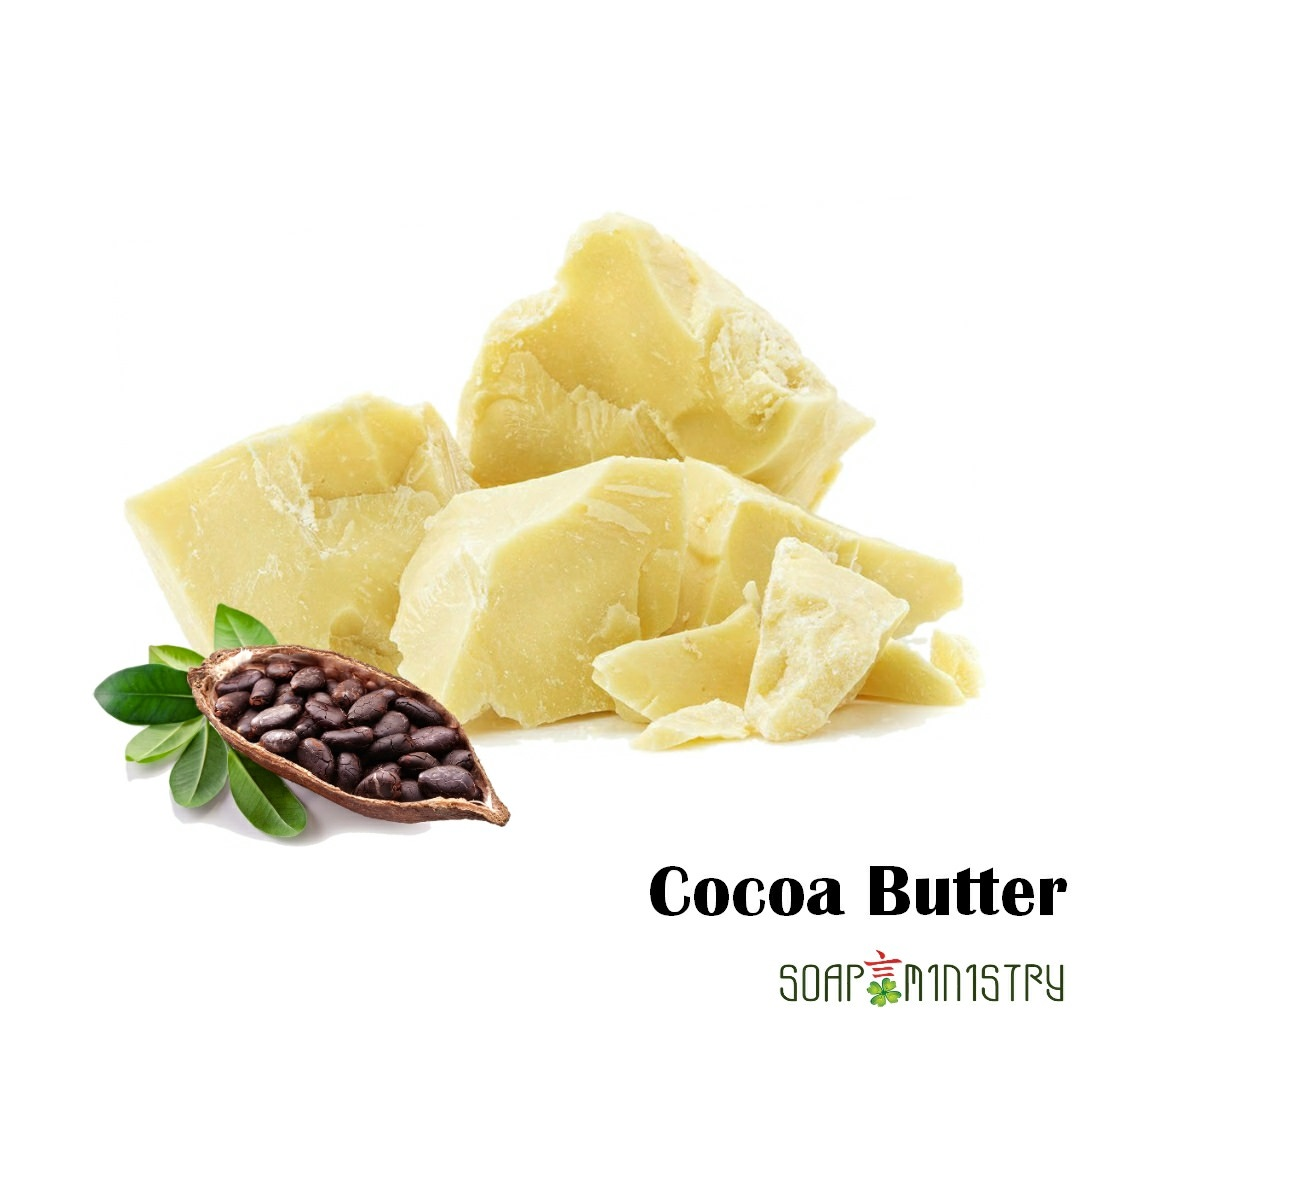 Cocoa Butter 100g